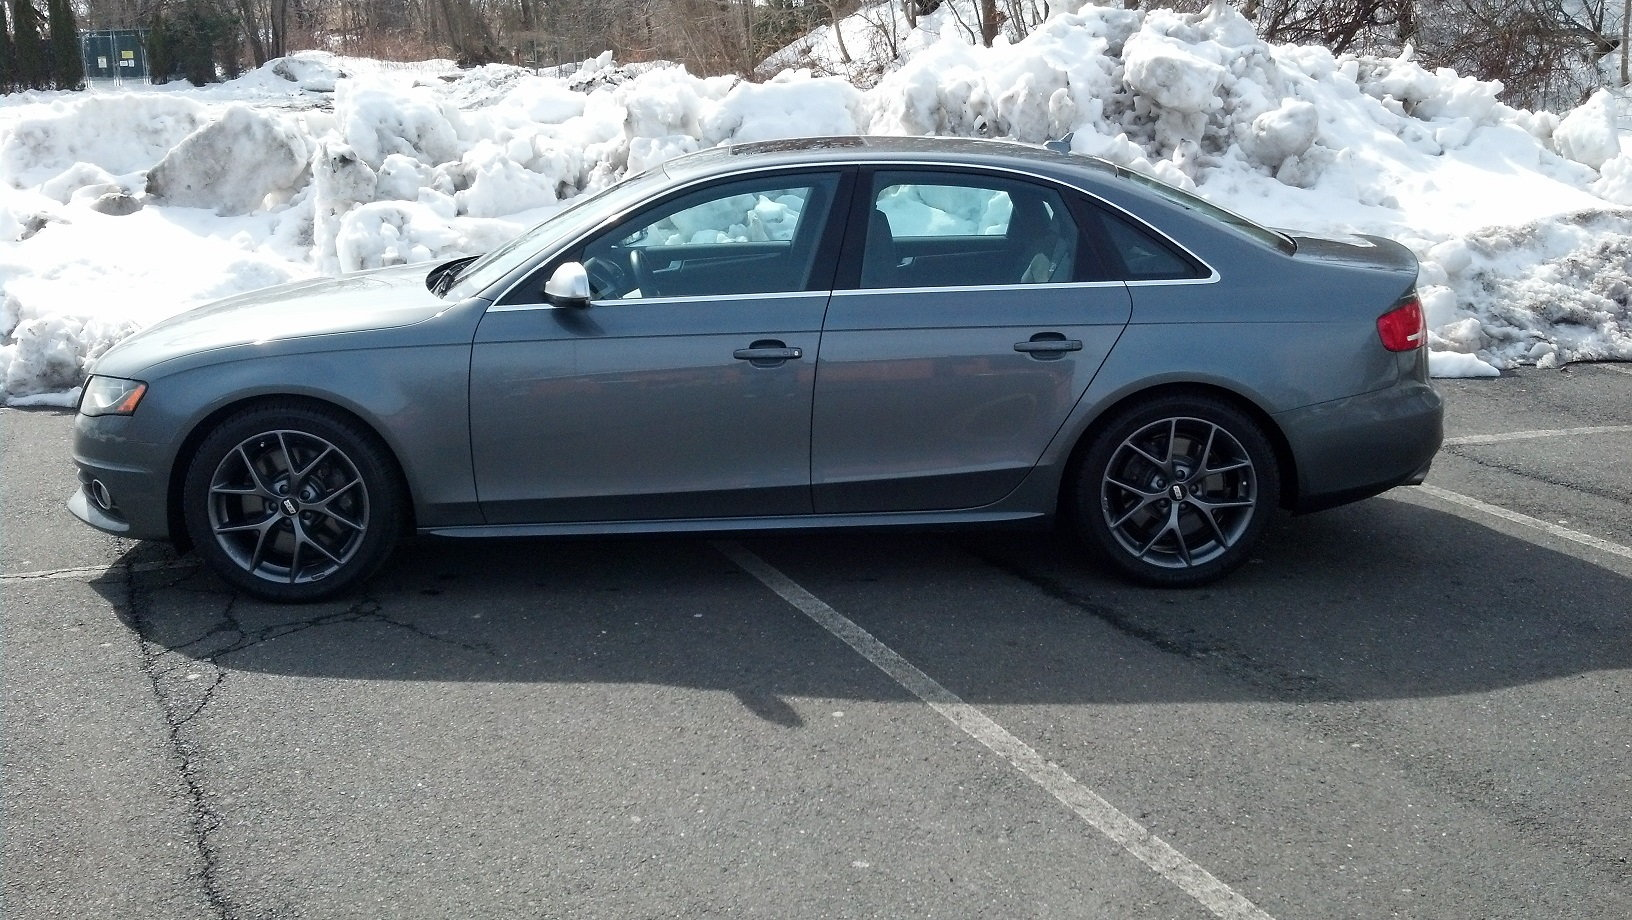 """Audi Other S4/A4 18"""" BBS SR and Michelin Pilot Alpin winter wheels and tires - AudiWorld Forums"""